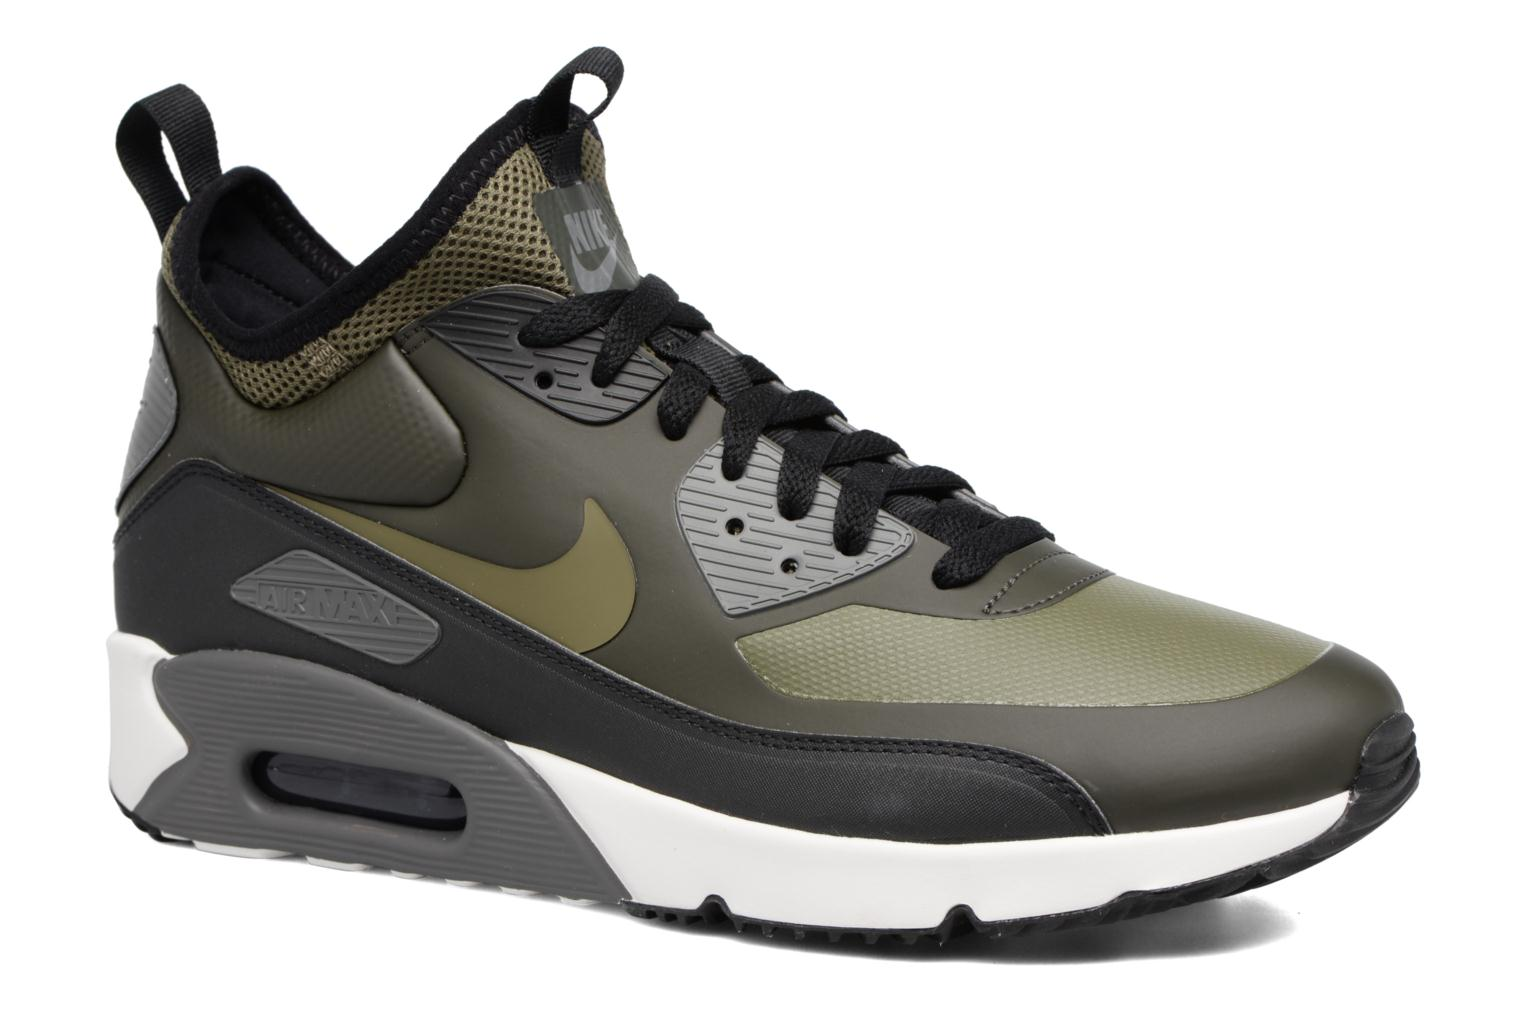 best website 60b1c b6bd5 Baskets Nike Air Max 90 Ultra Mid Winter Vert vue détail paire